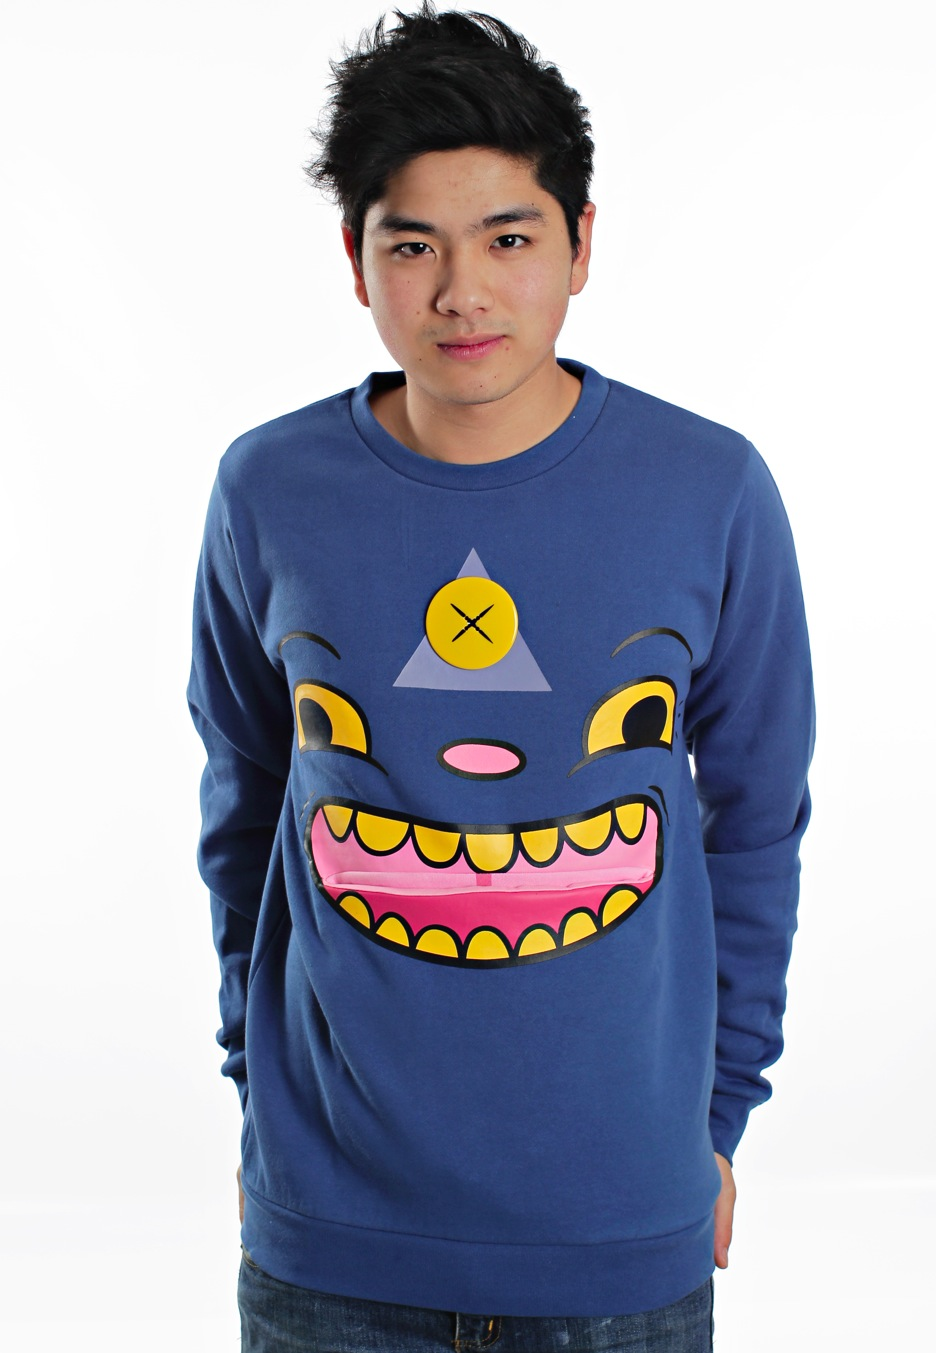 Drop Dead - Tripster Blue - Sweater - Streetwear Online Shop - Impericon.com Worldwide